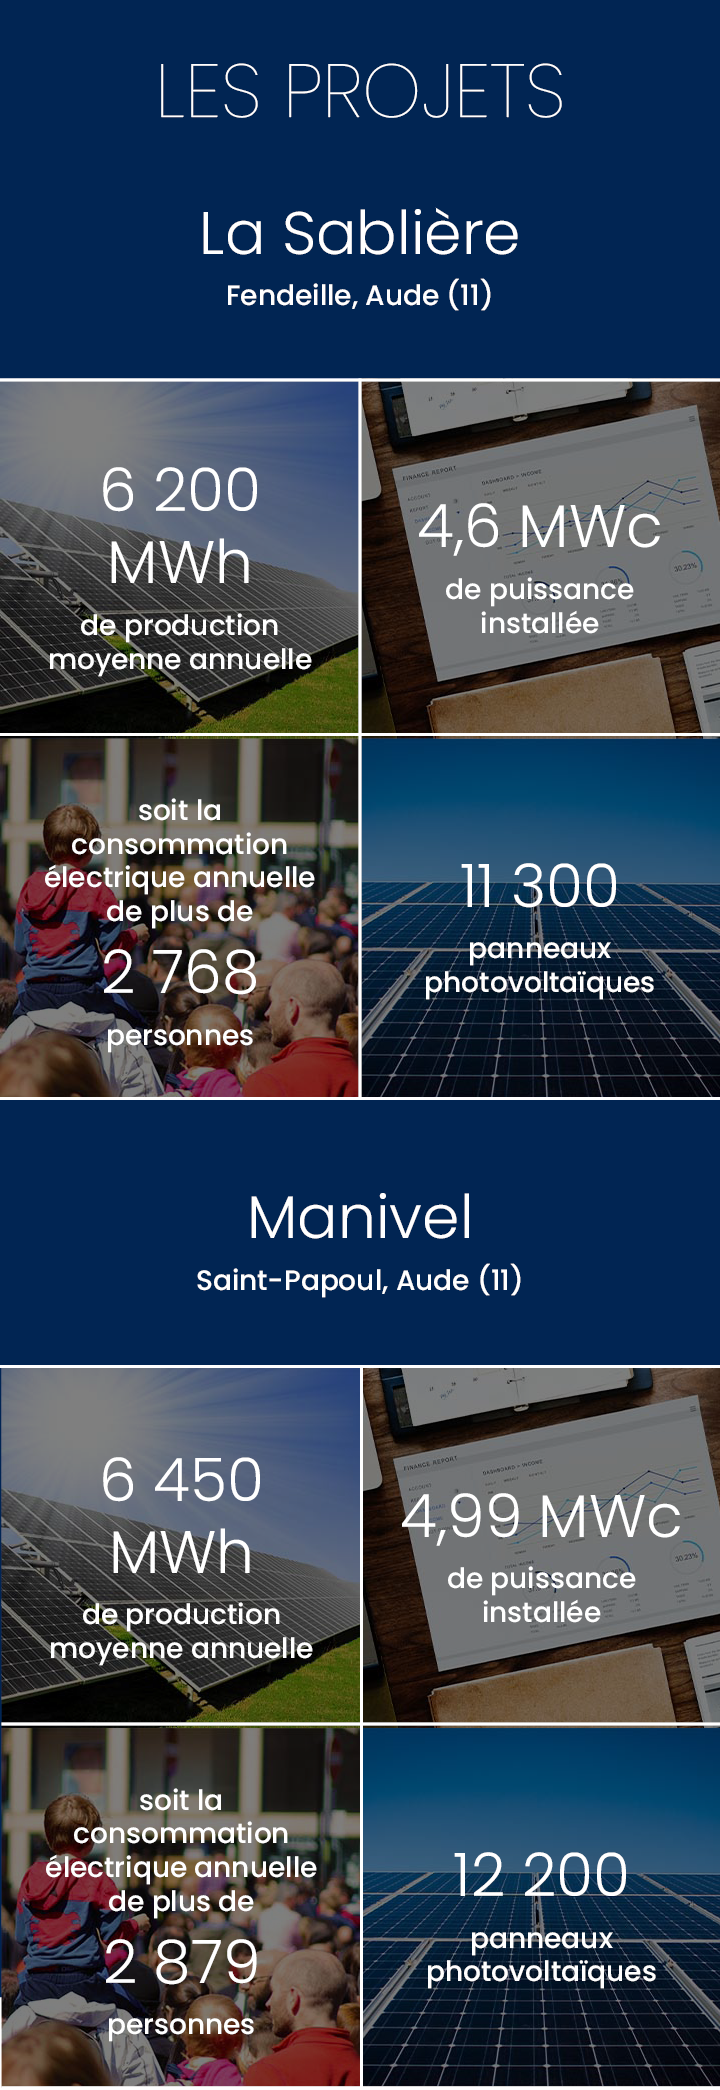 Production annuelle 12 650 000 kWh